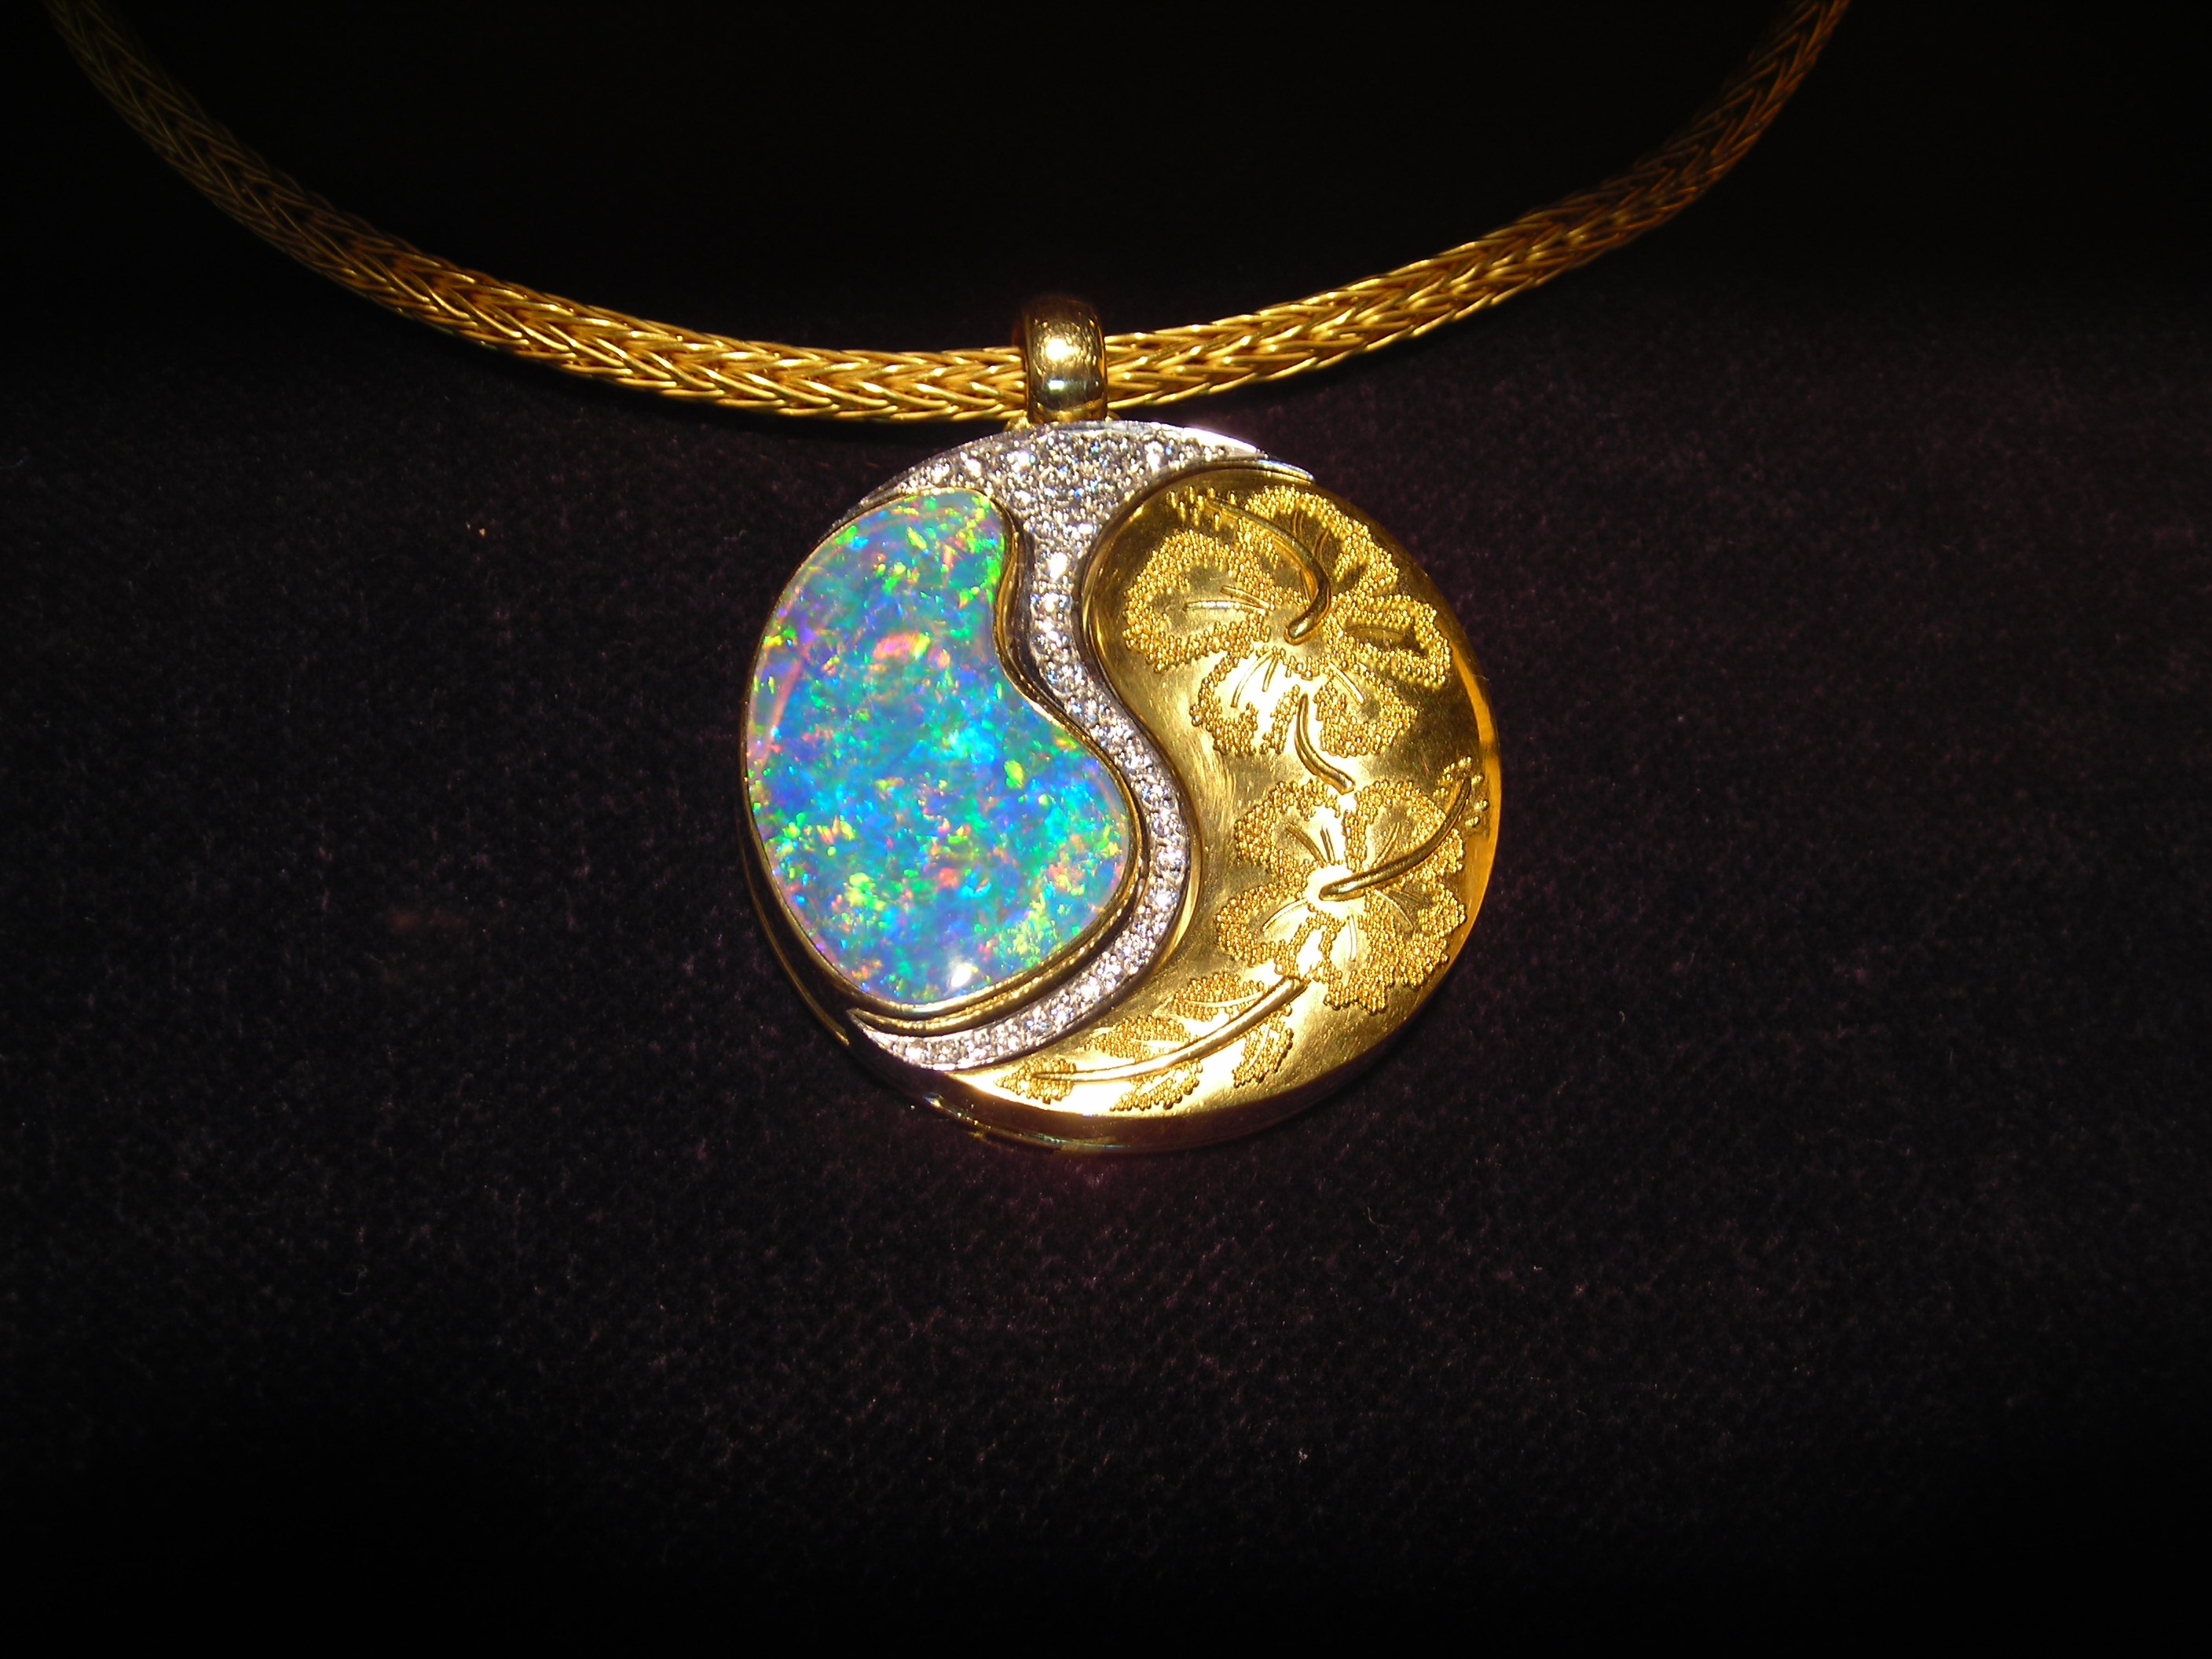 opal real victorian necklace pendant erie basin